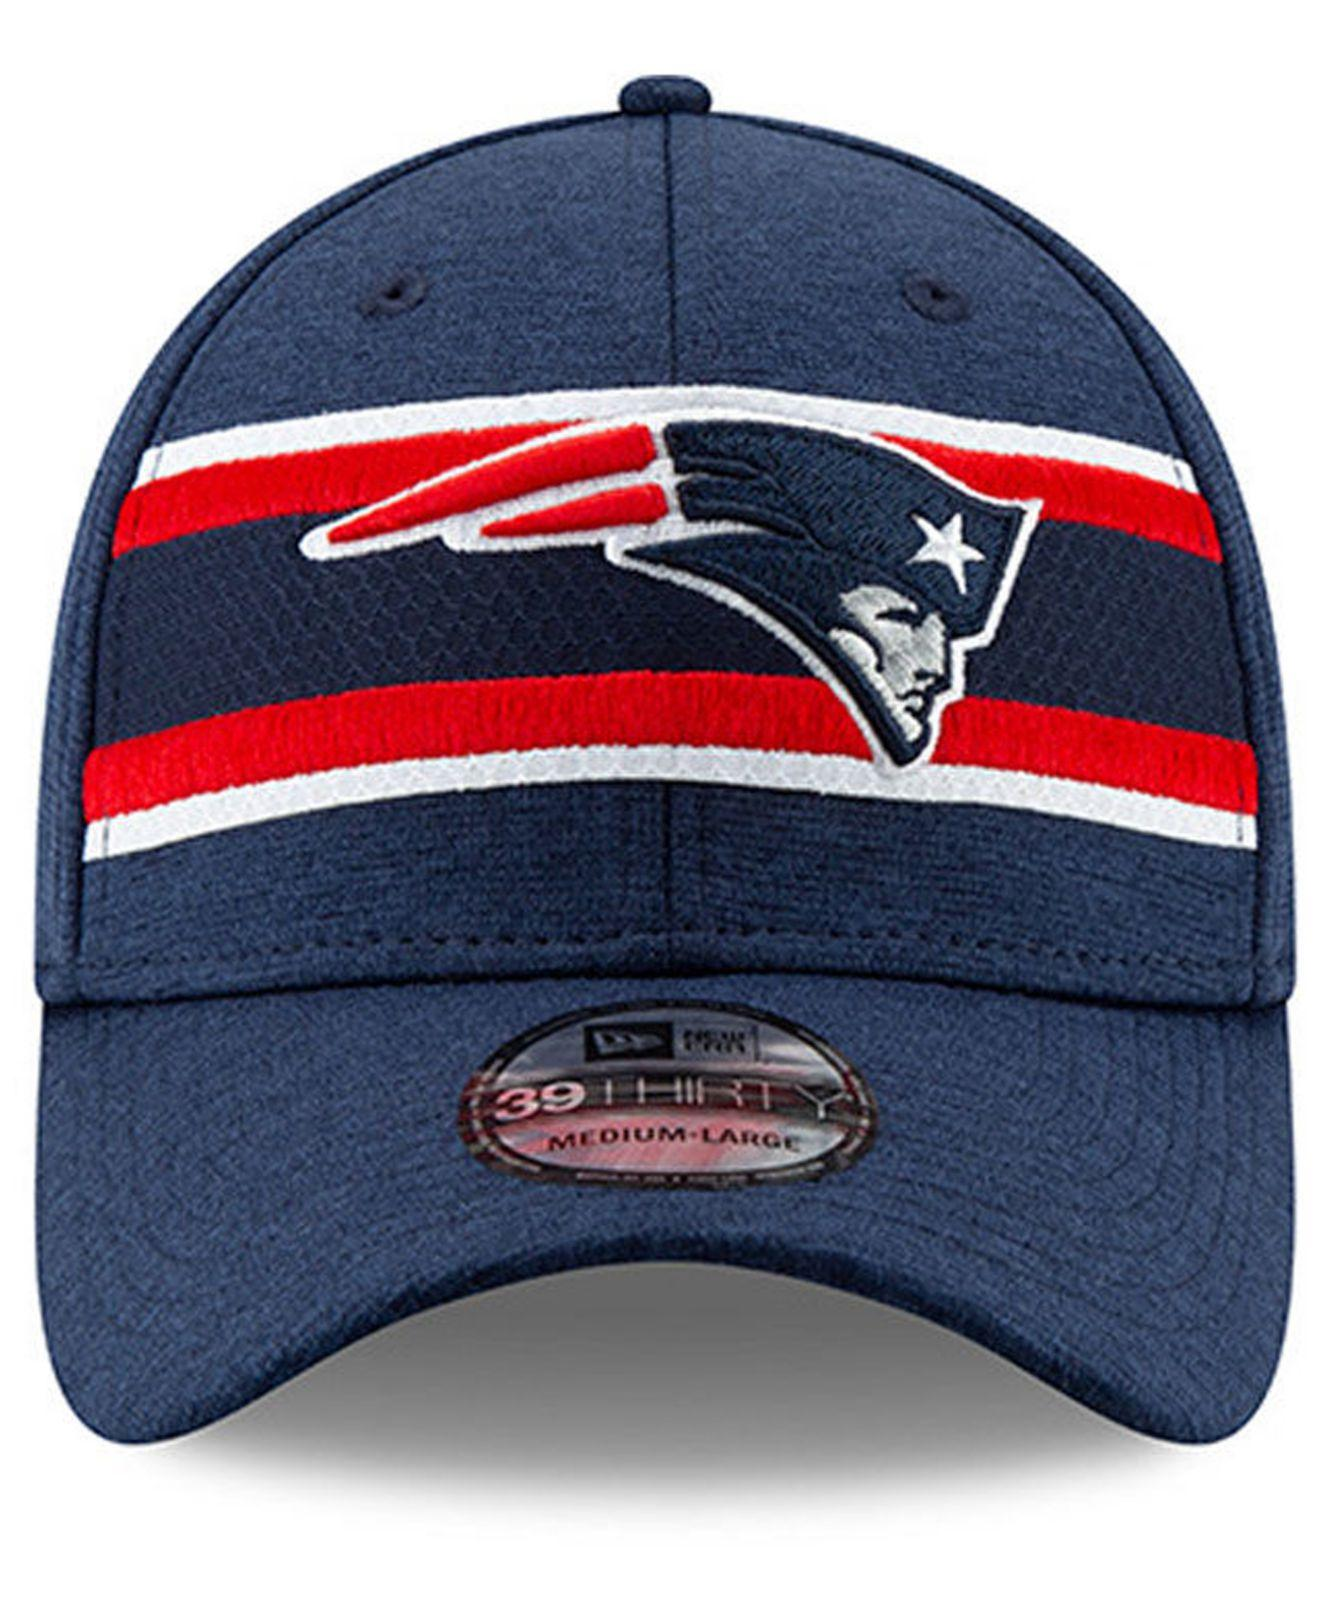 b07715e5e Lyst - KTZ New England Patriots Super Bowl Liii Game Sideline 39thirty  Stretch Fitted Cap in Blue for Men